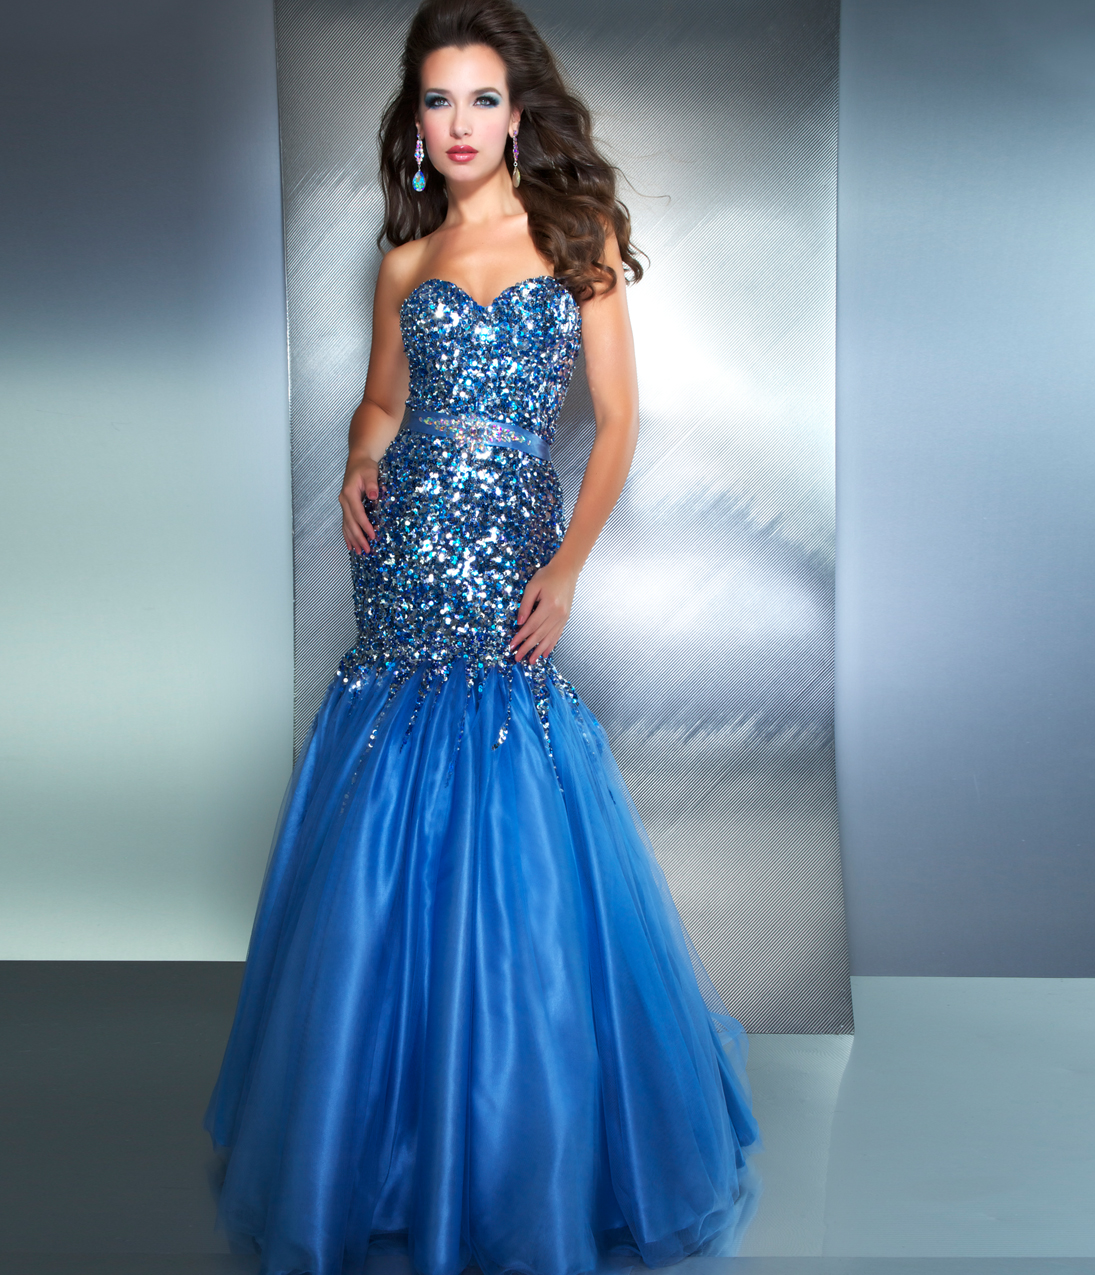 Sequined Prom Dresses - Evening Wear